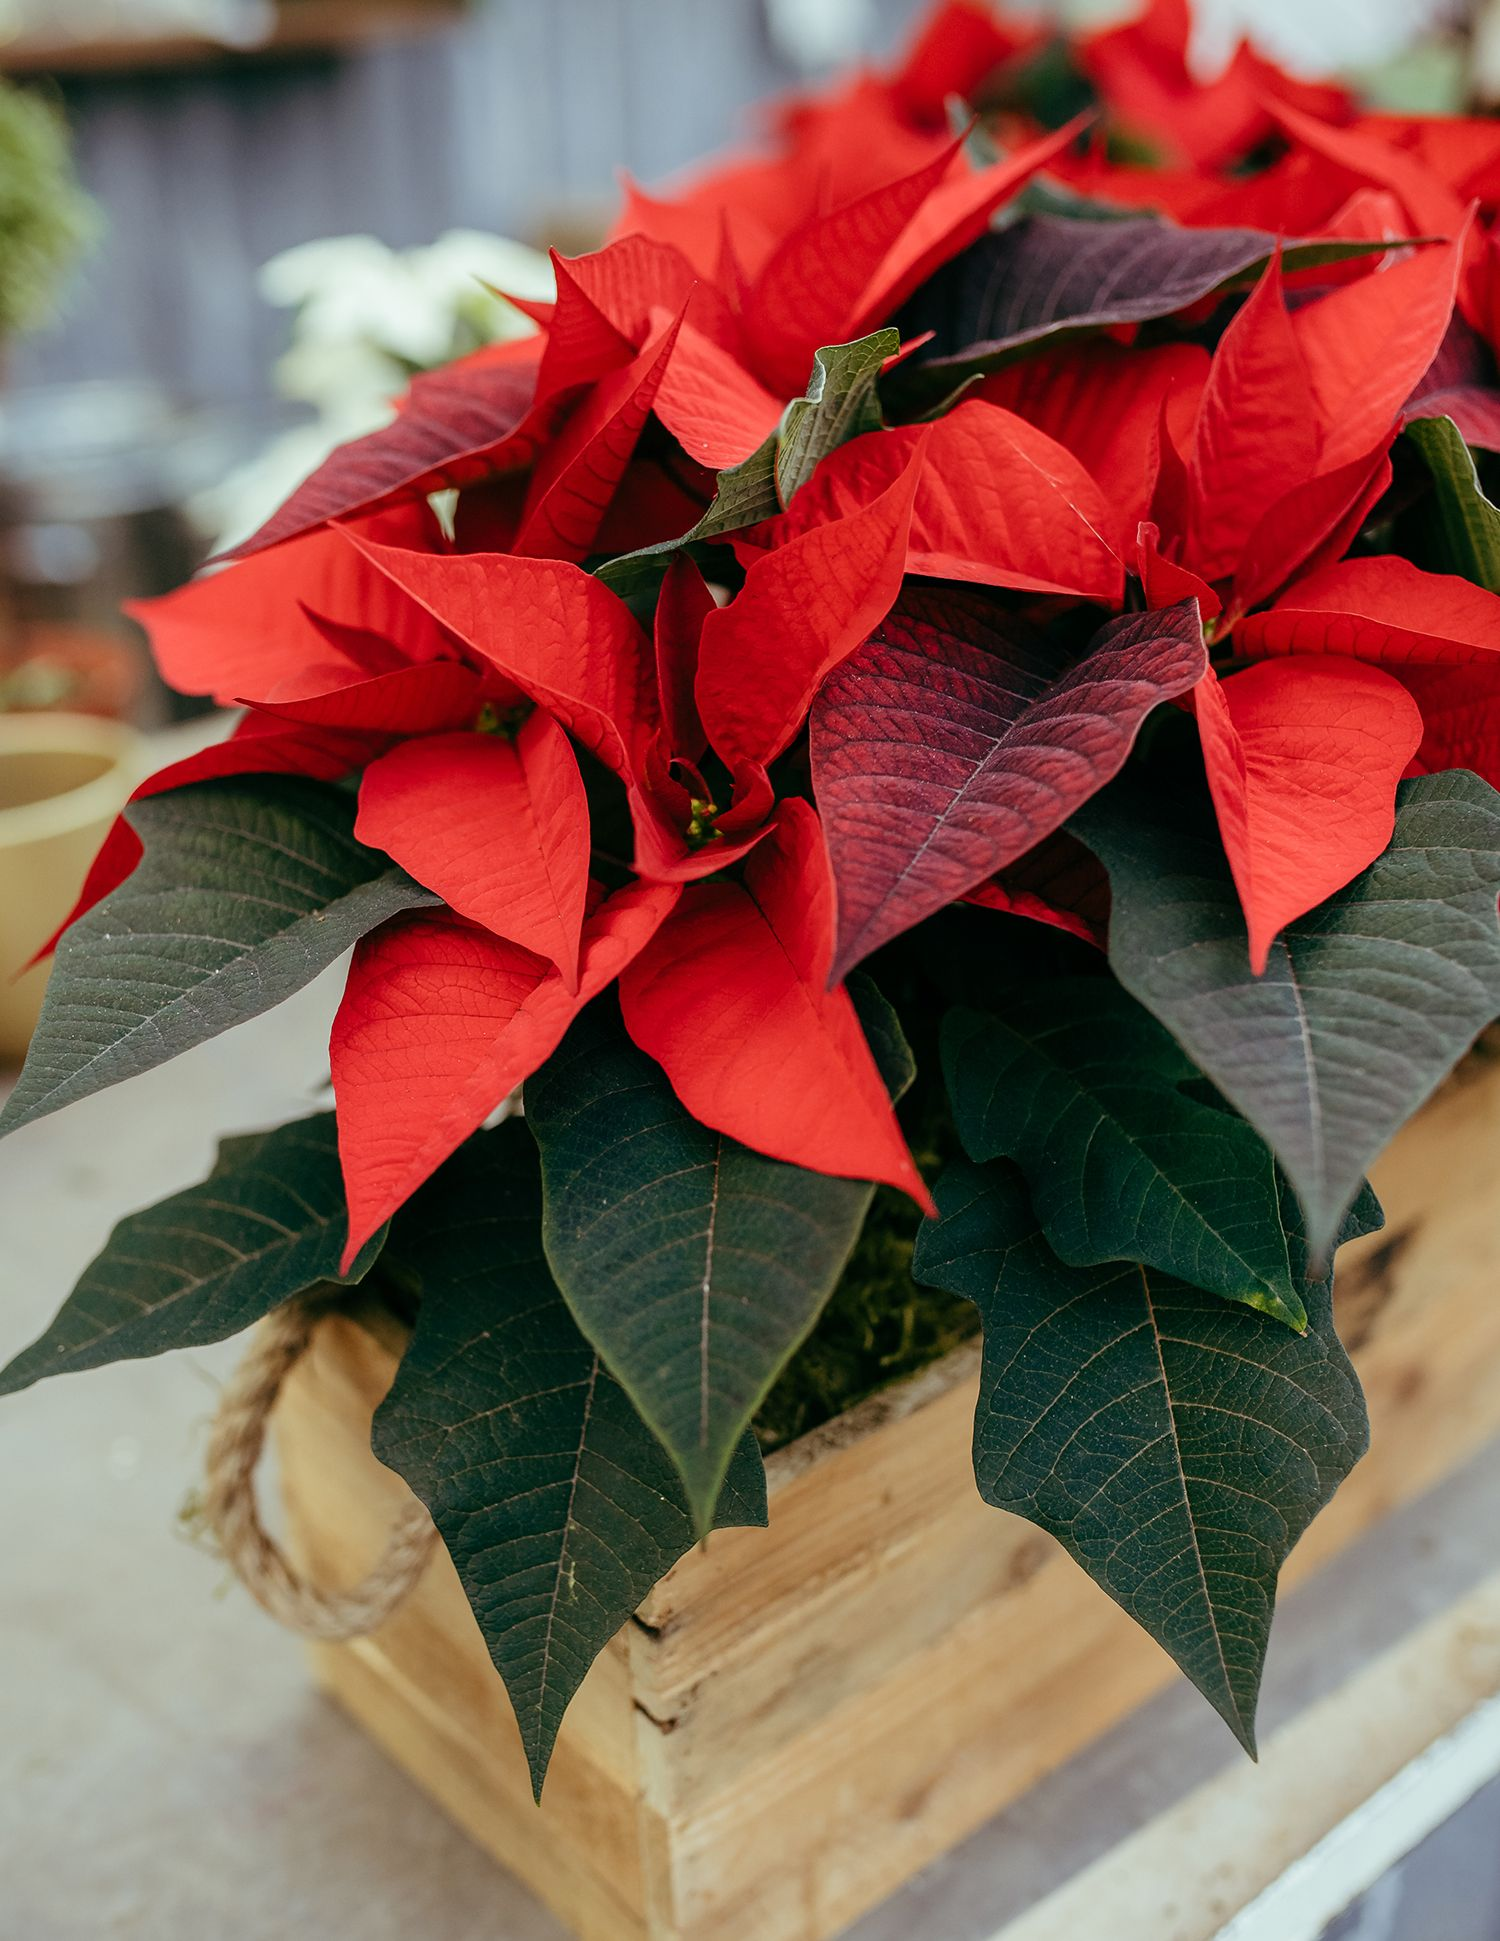 How To Care For Poinsettia Plants Gardening Channel Poinsettia Plant Plants Organic Gardening Tips